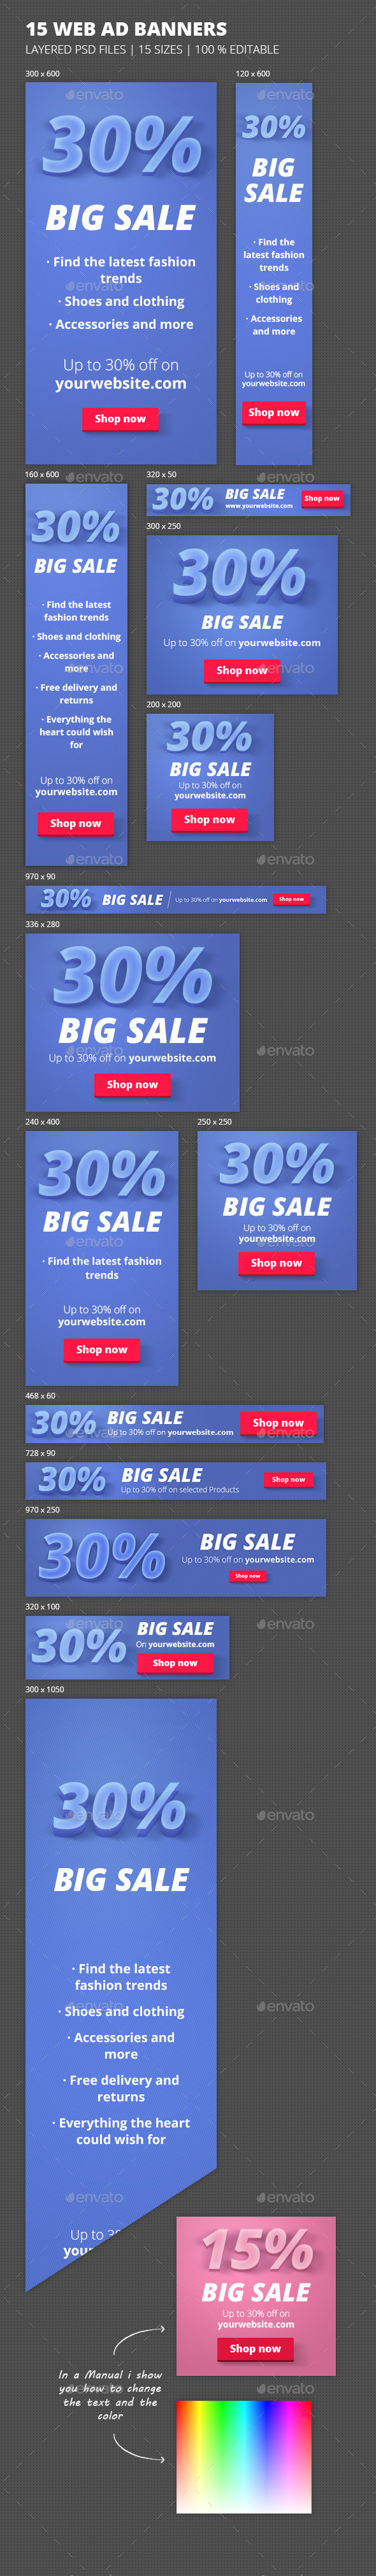 GraphicRiver Online Marketing Big Sale Banners 9804649